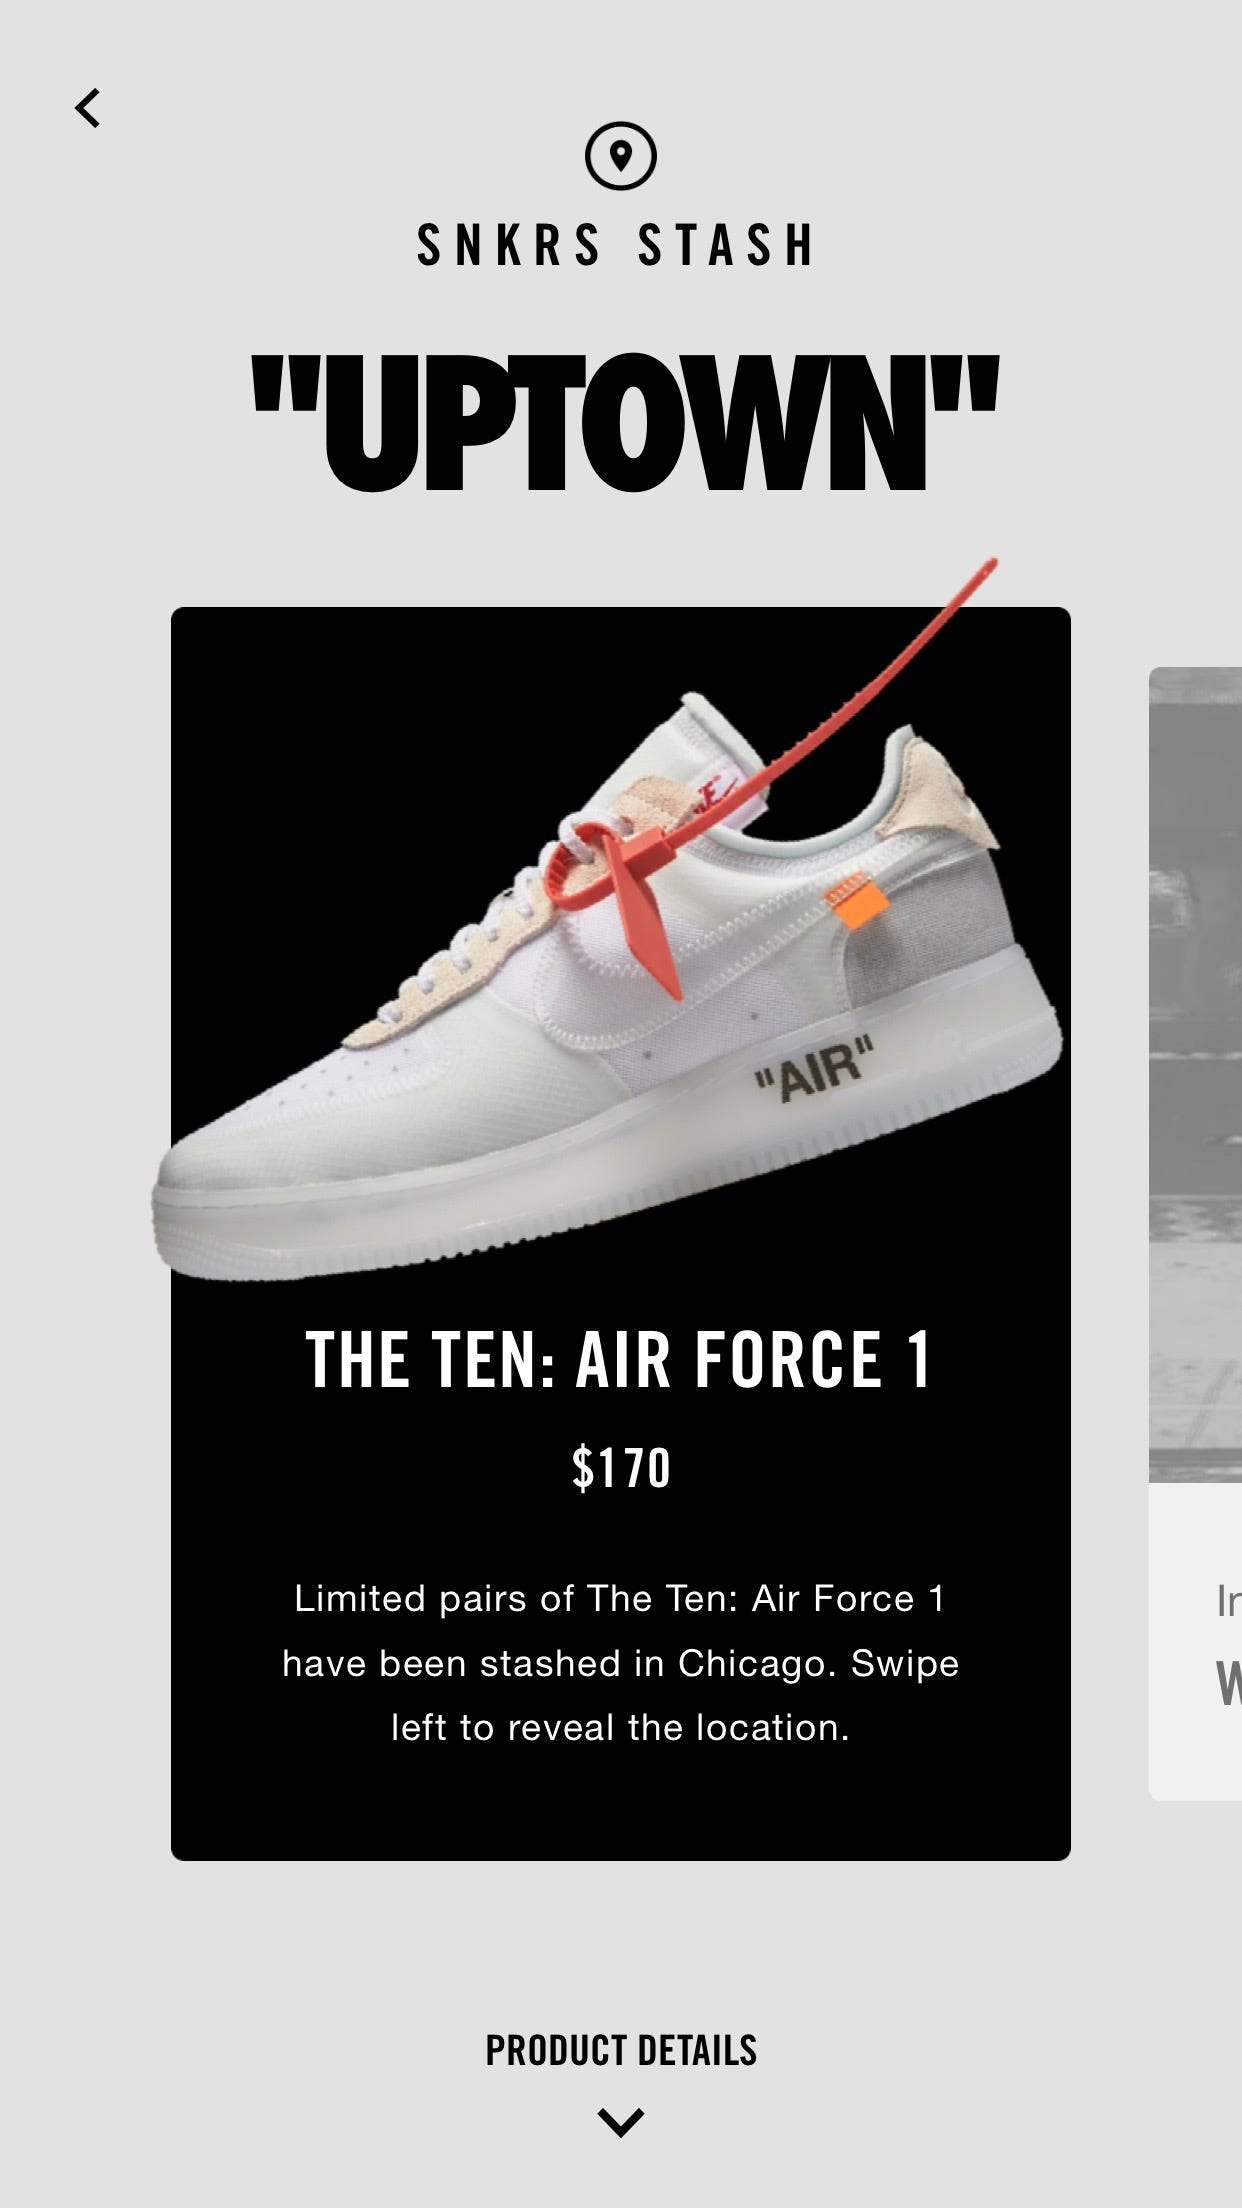 Snkrs app how long does it take